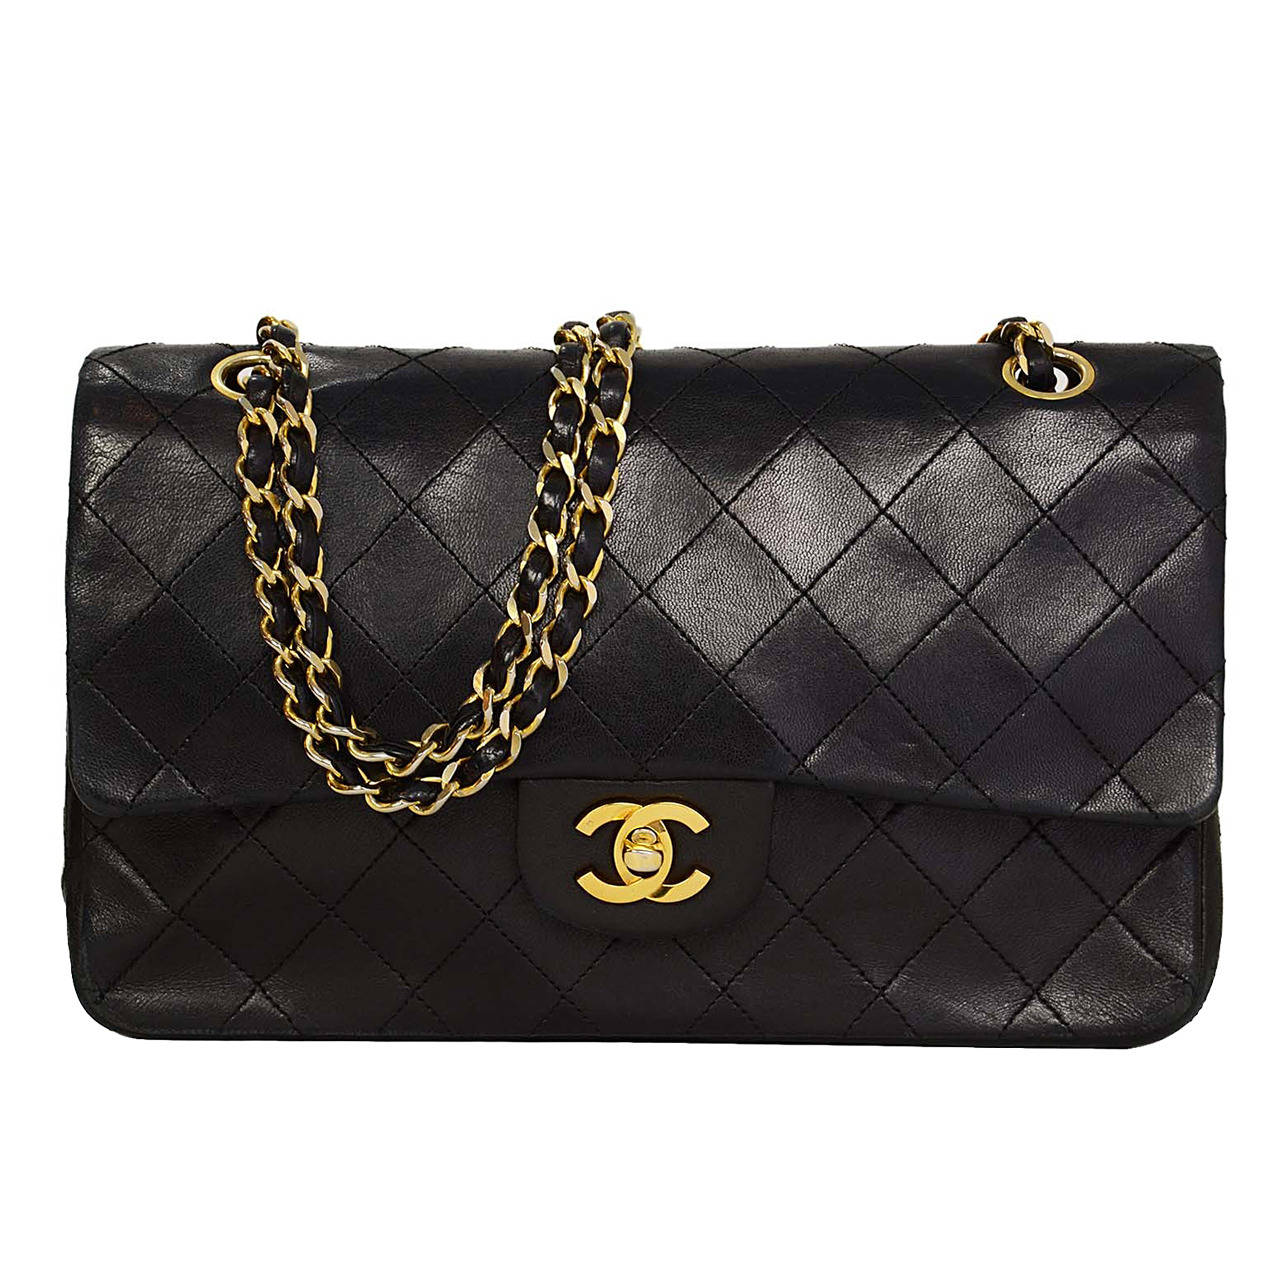 8c79ae2cc443 CHANEL Vintage 80's Black Quilted Lambskin 10